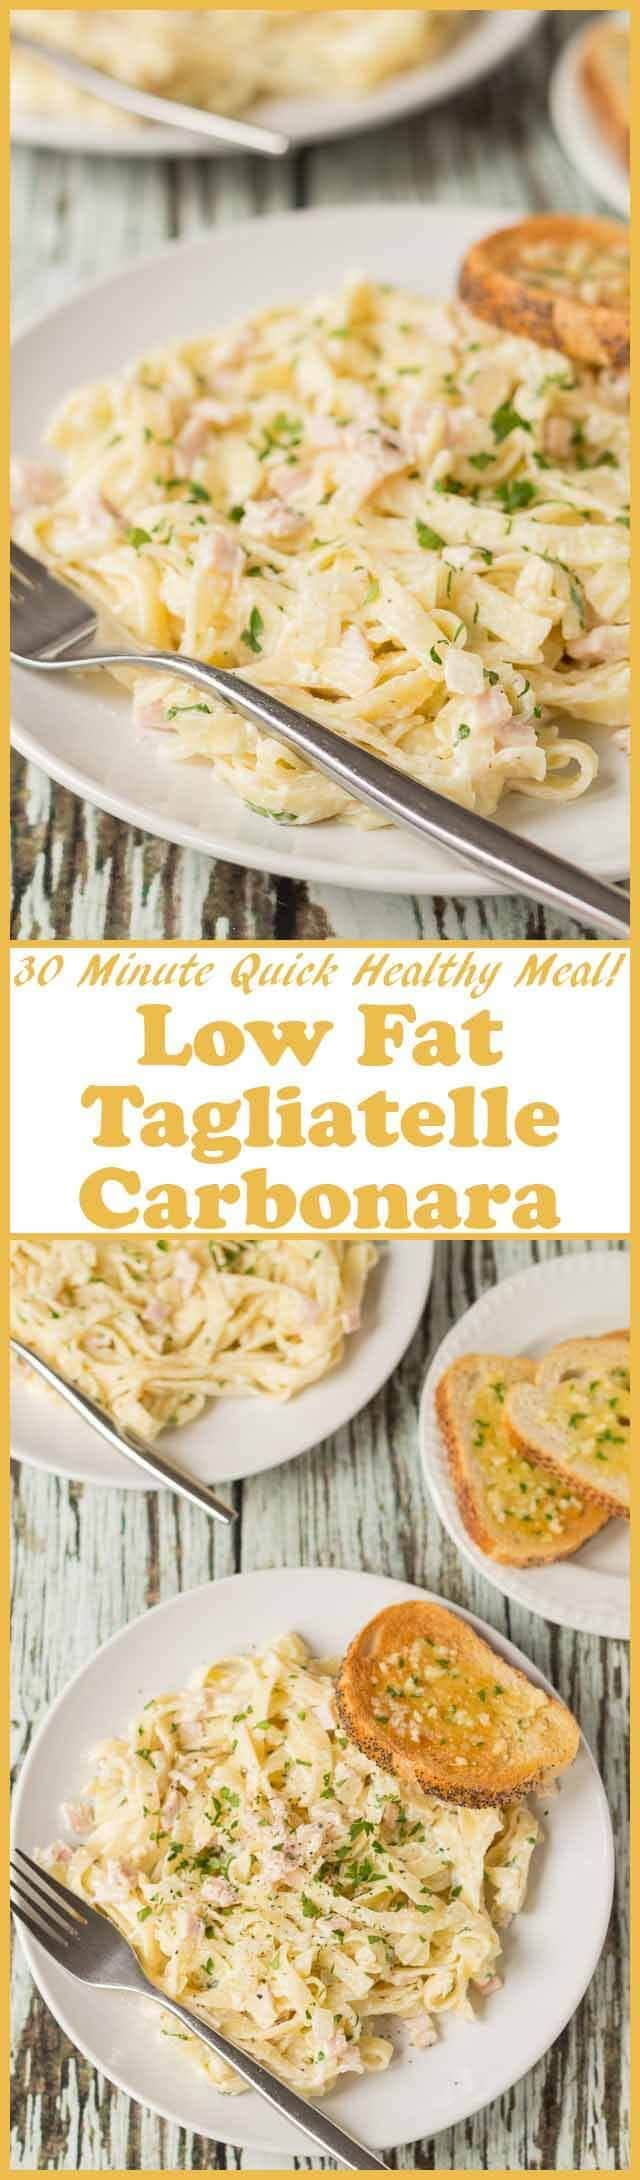 Low fat tagliatelle carbonara is a lighter version of the traditional classic Italian pasta dish. Ready in just 30 minutes, this healthier recipe is the perfect weeknight quick healthy pasta meal.